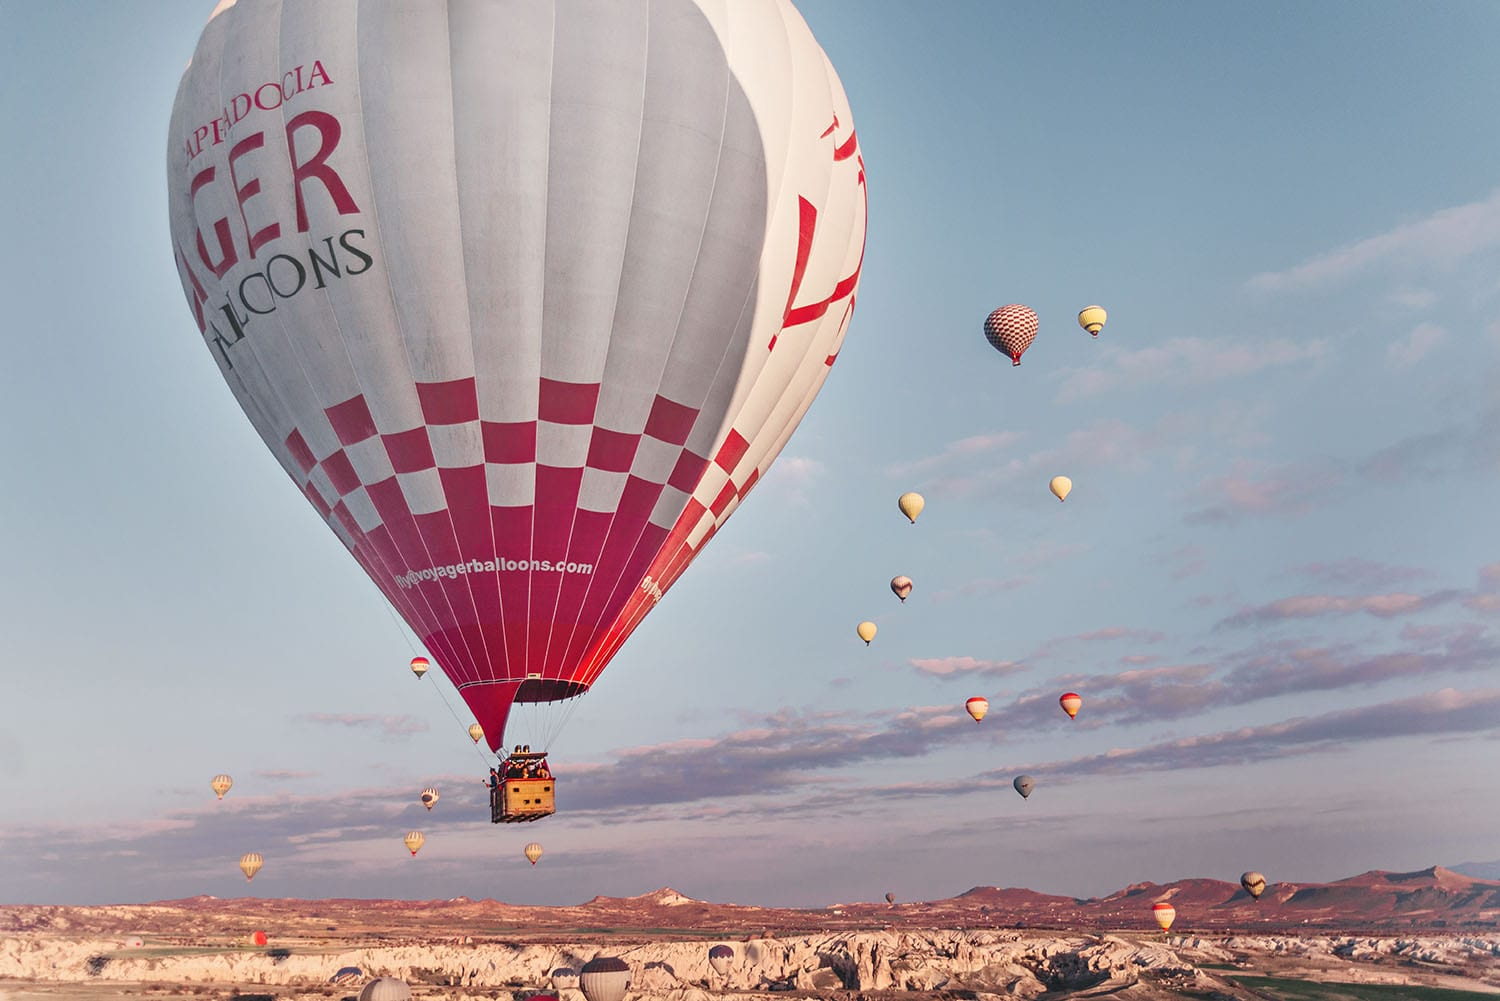 Hot Air Ballooning in Cappadocia with Voyager Balloons